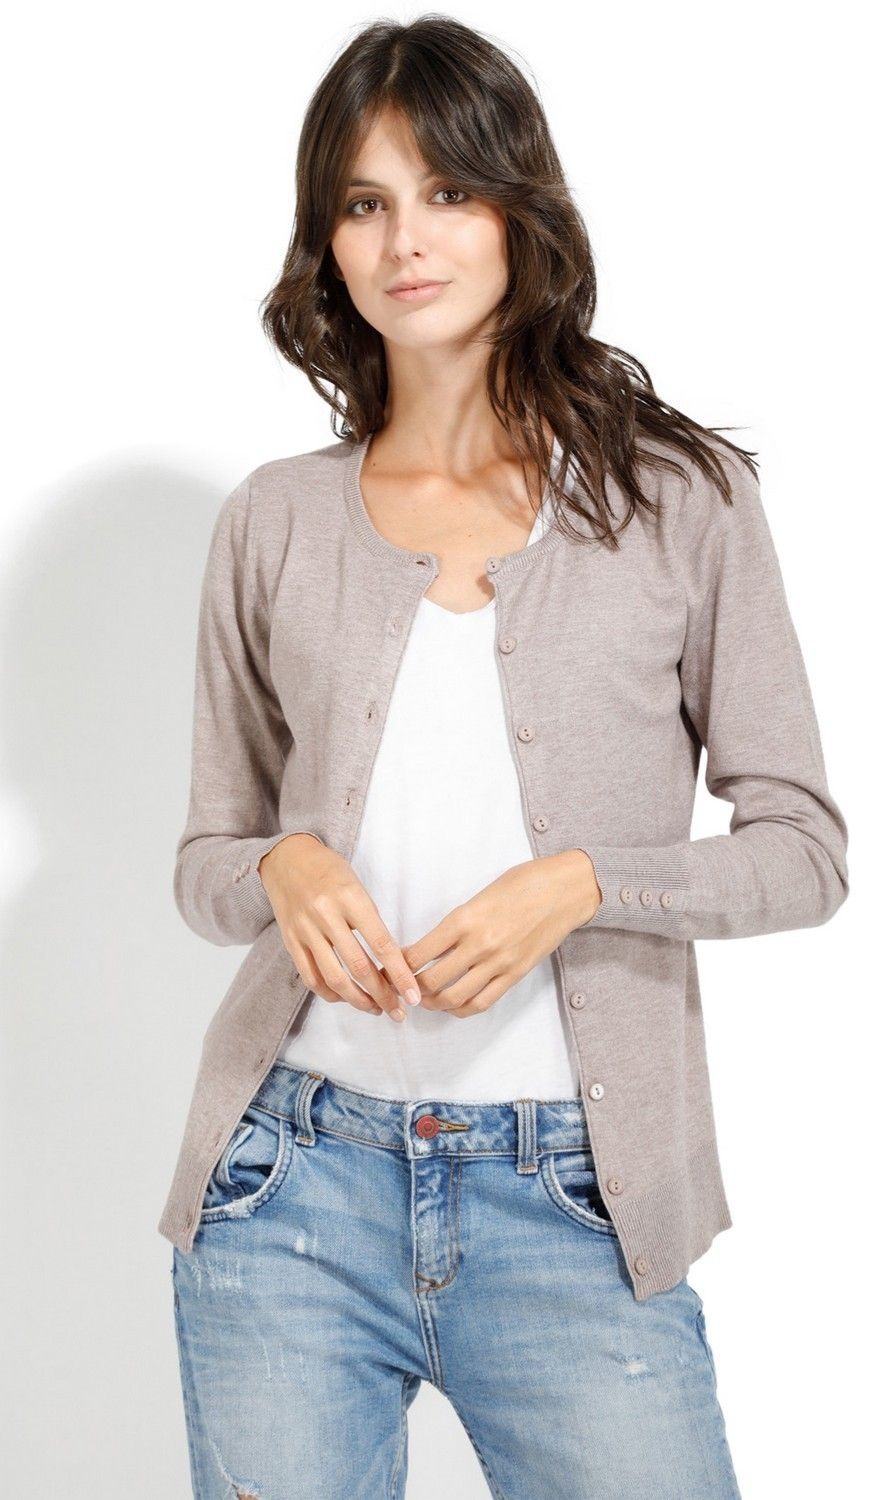 C&JO Round Neck Cardigan with Buttoned Sleeves in Beige